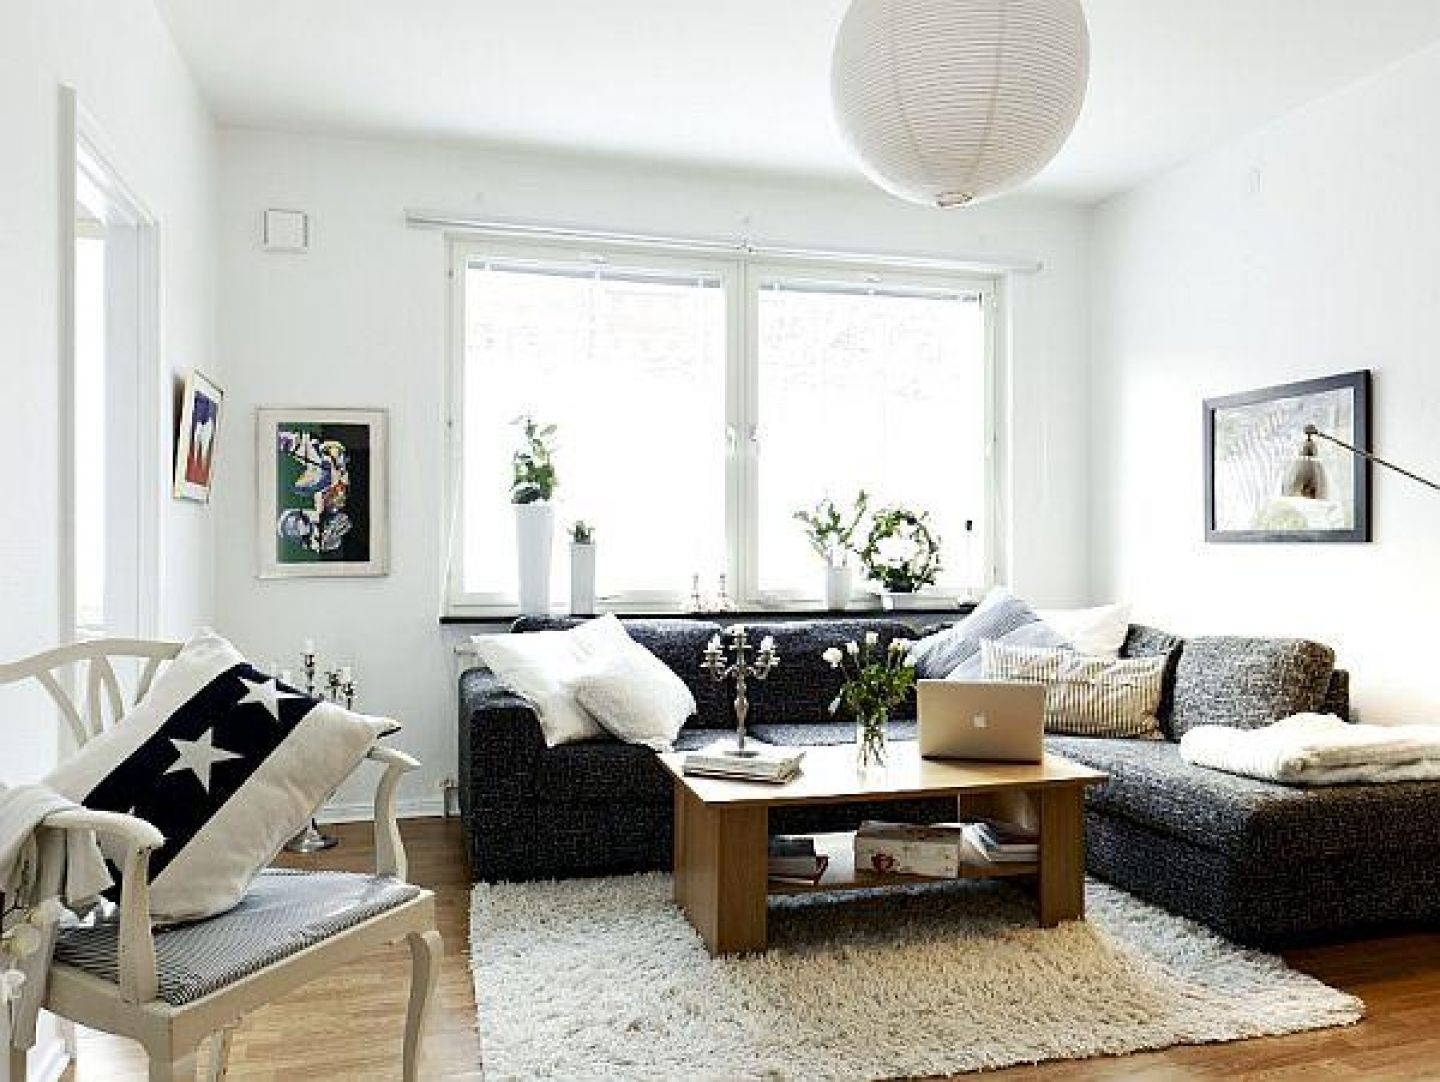 Small White Elite Apartment Living Room Design Ideas For June With L Shaped Blac Apartment Living Room Design Small Apartment Living Room Apartment Living Room L living room designs